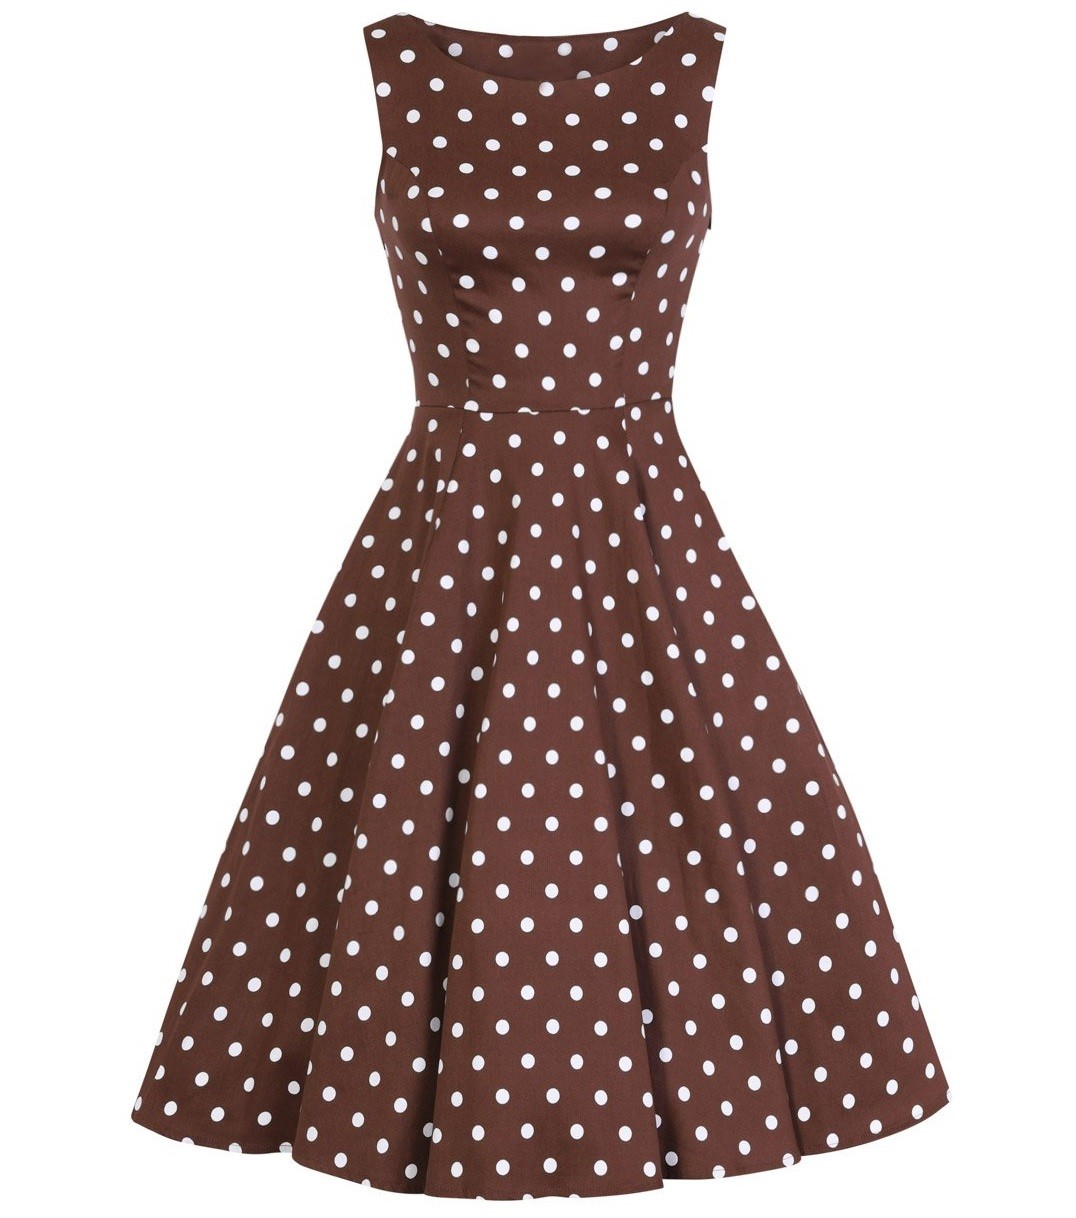 H&R London Cindy Chocolate Polka Dot Dress